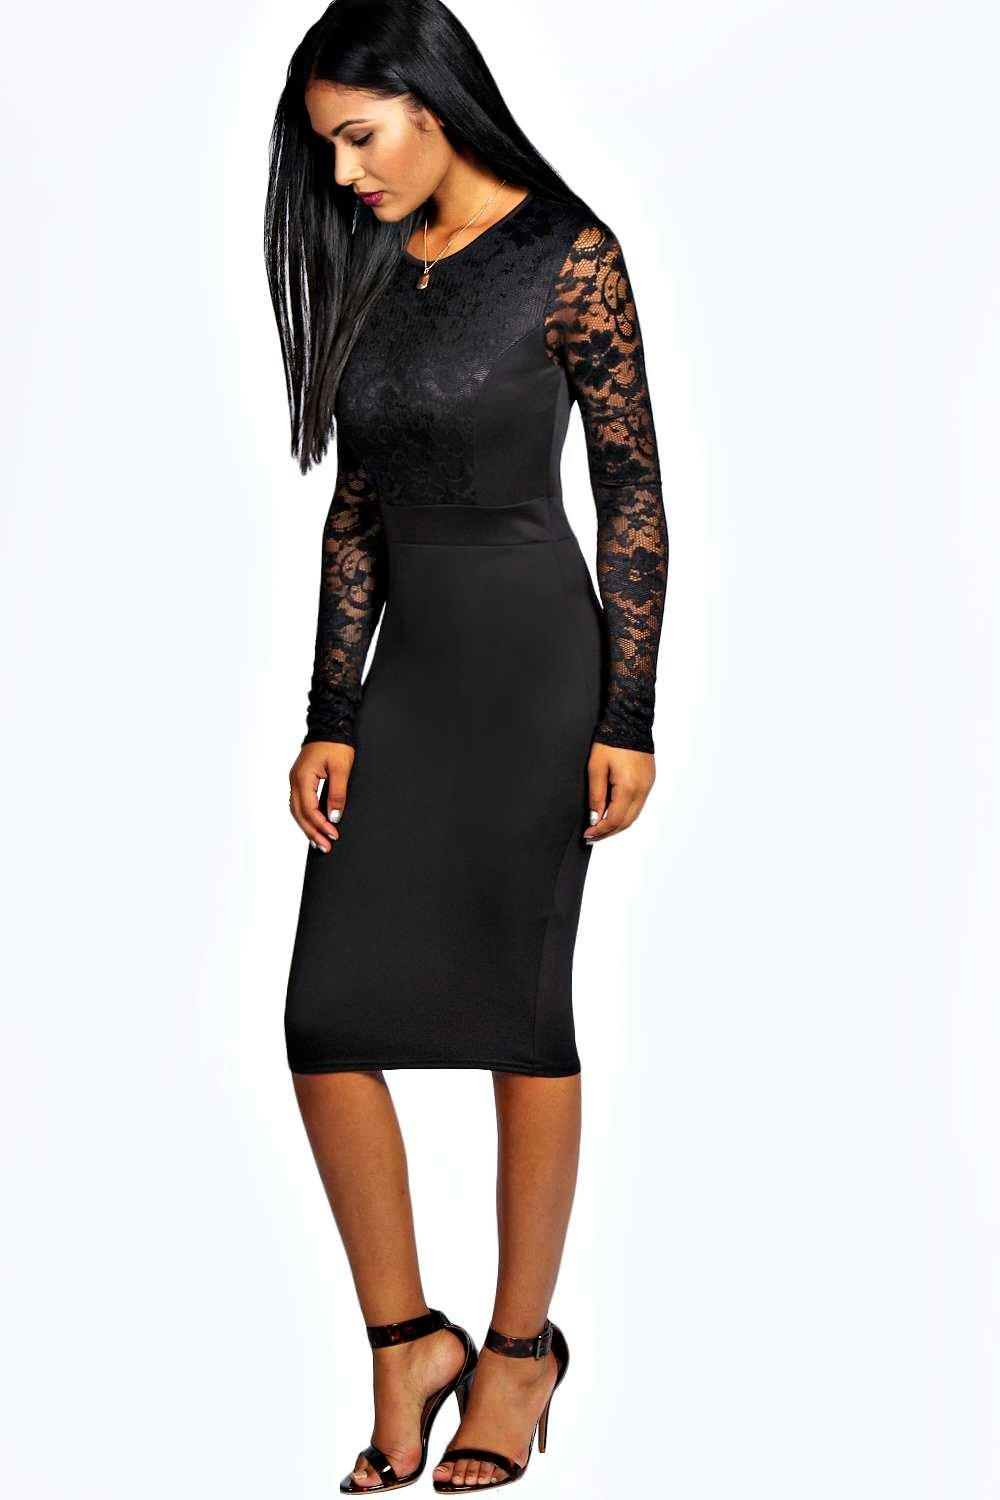 Anna Lace Long Sleeve Bodycon Midi Dress at boohoo.com